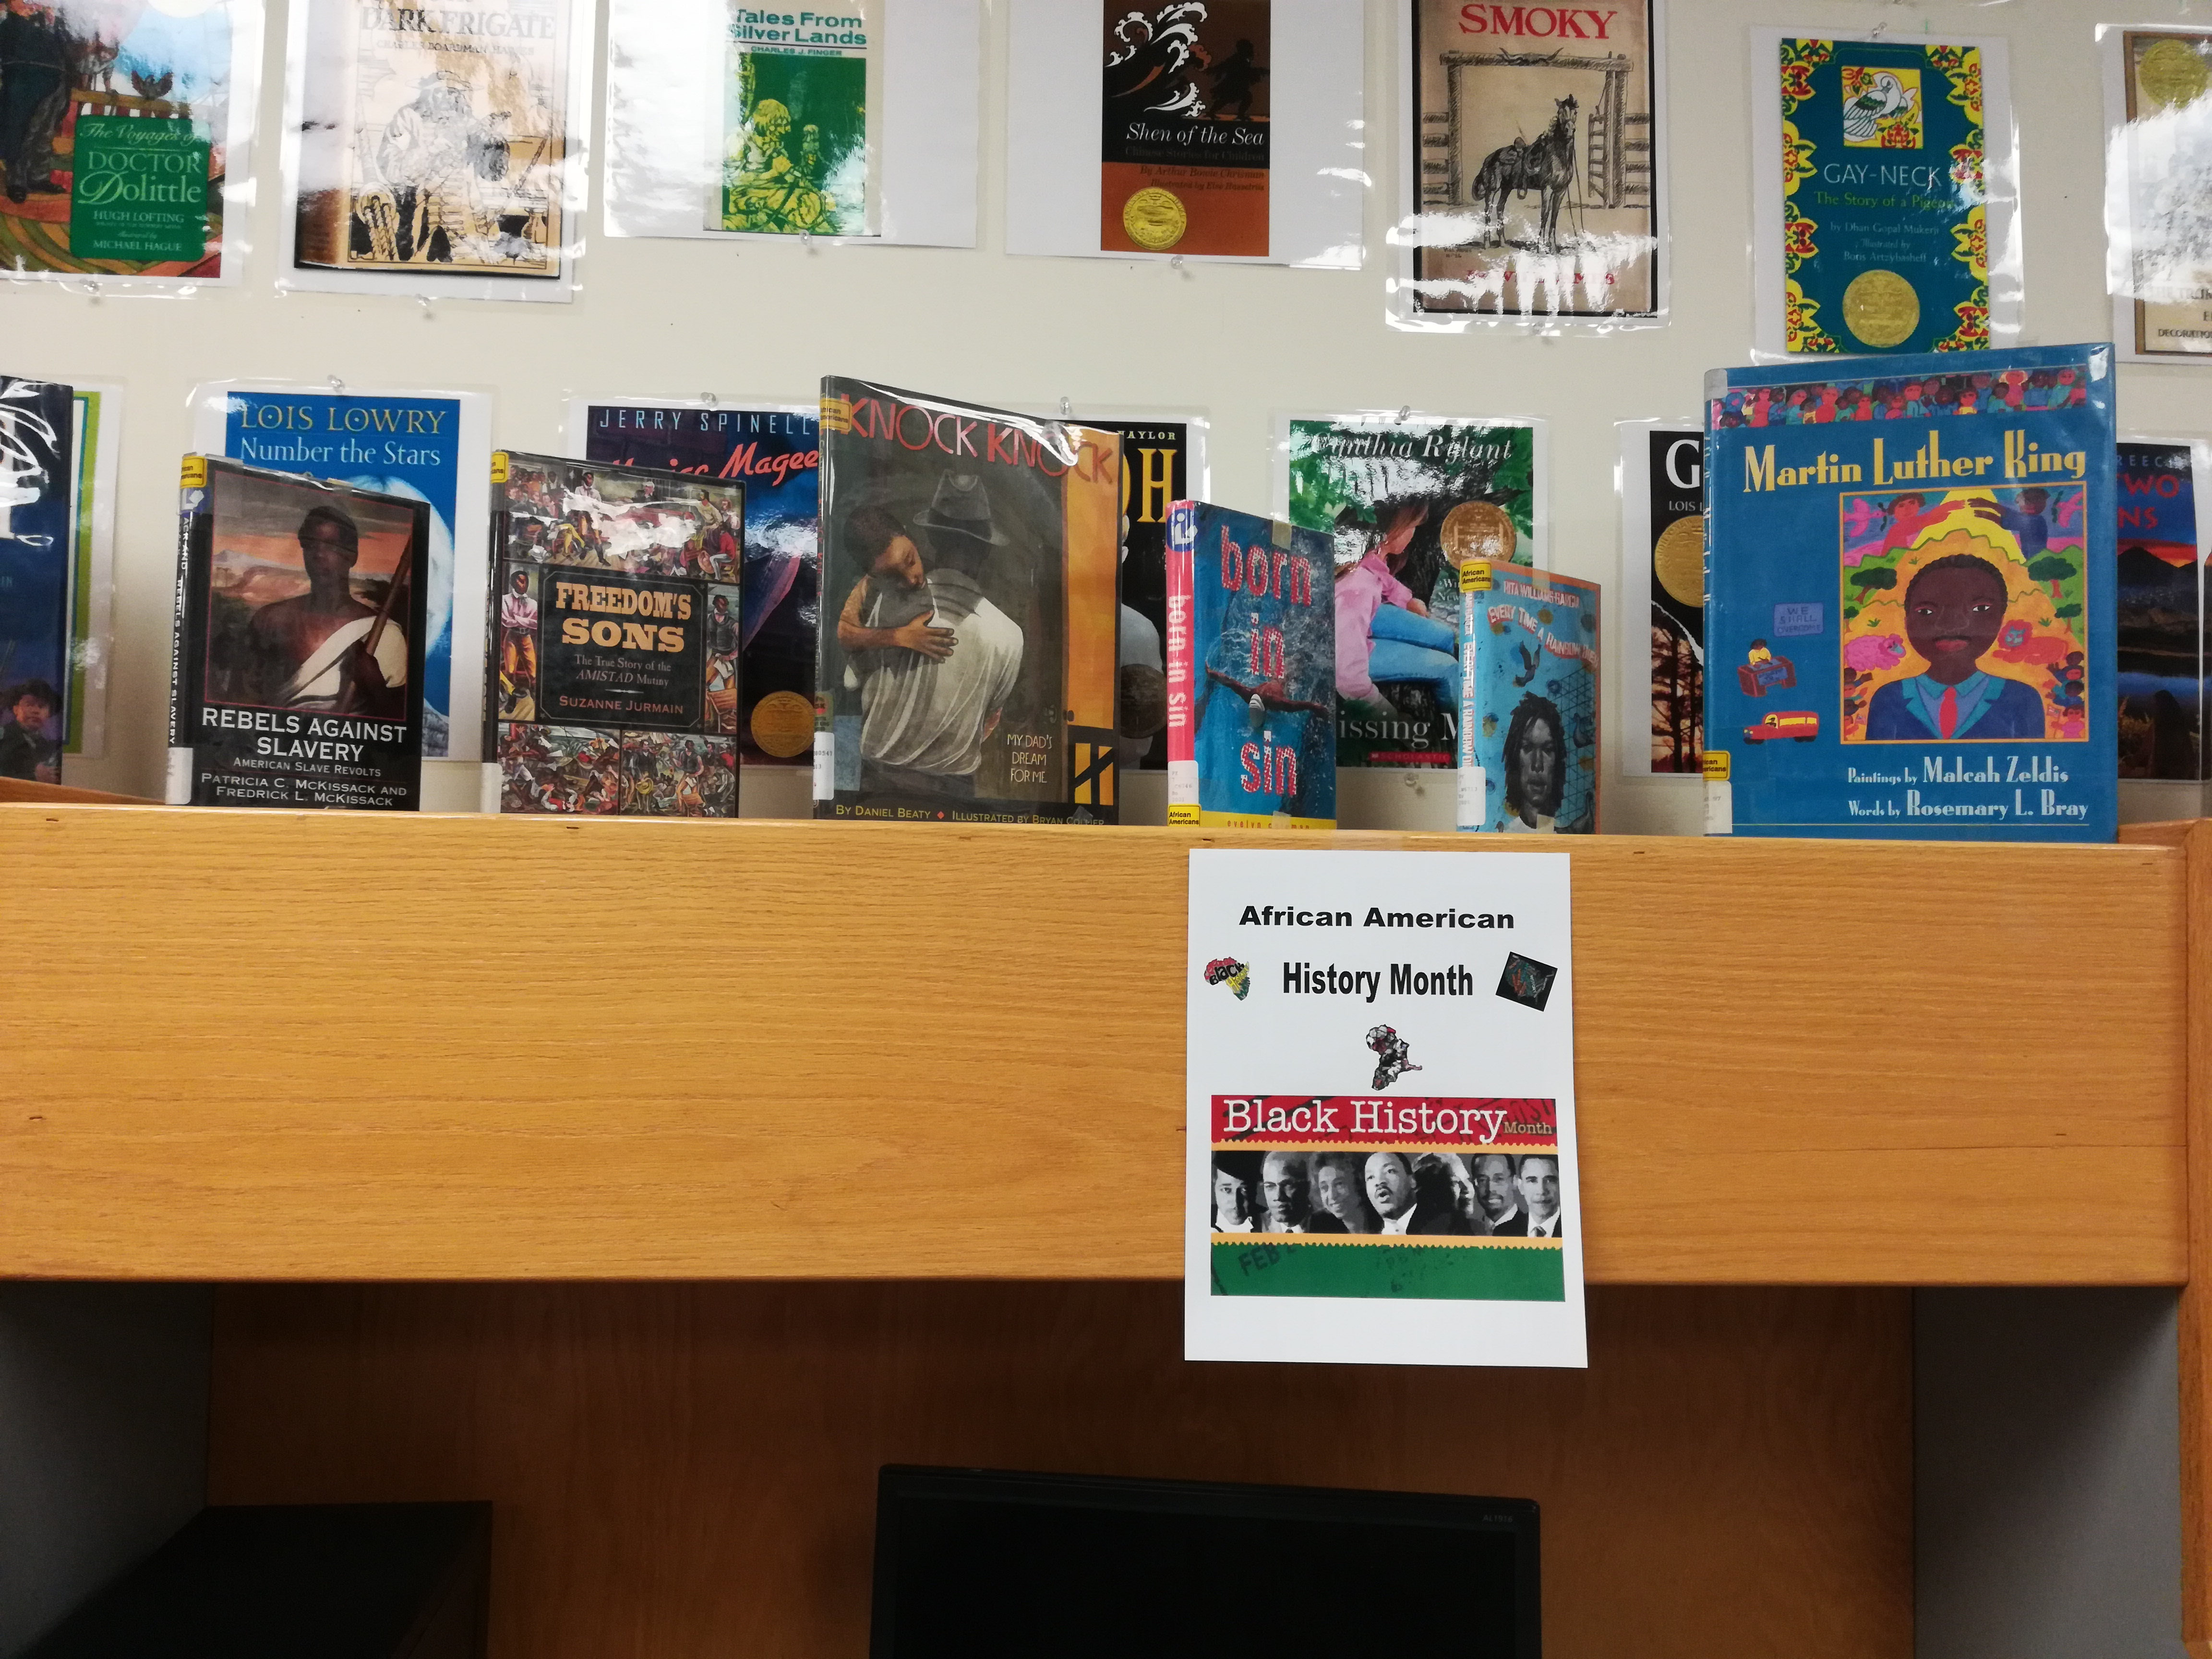 Books on display for Black History month in the curriculum room of the library, Decorative printed sign that say African American History Month